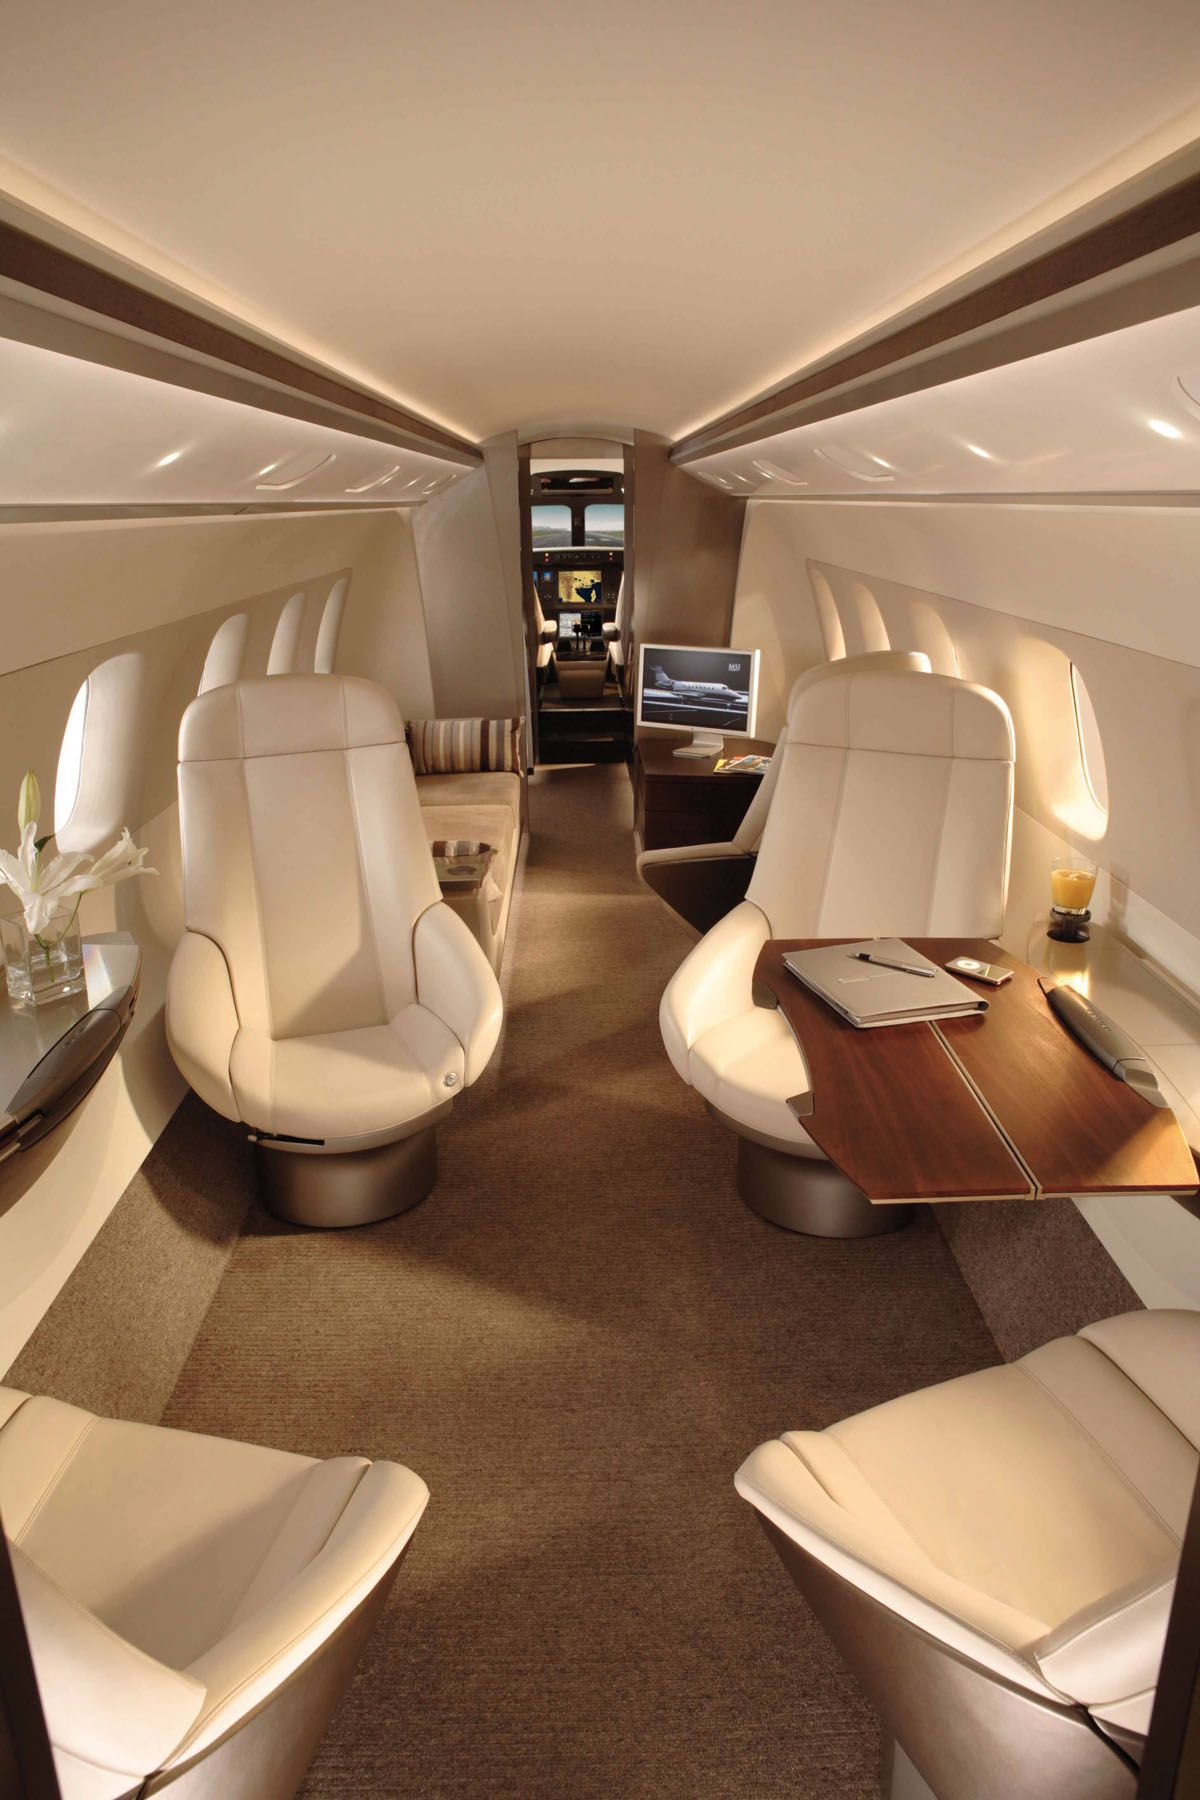 Legacy 500 - Comfortably seats 12 passengers